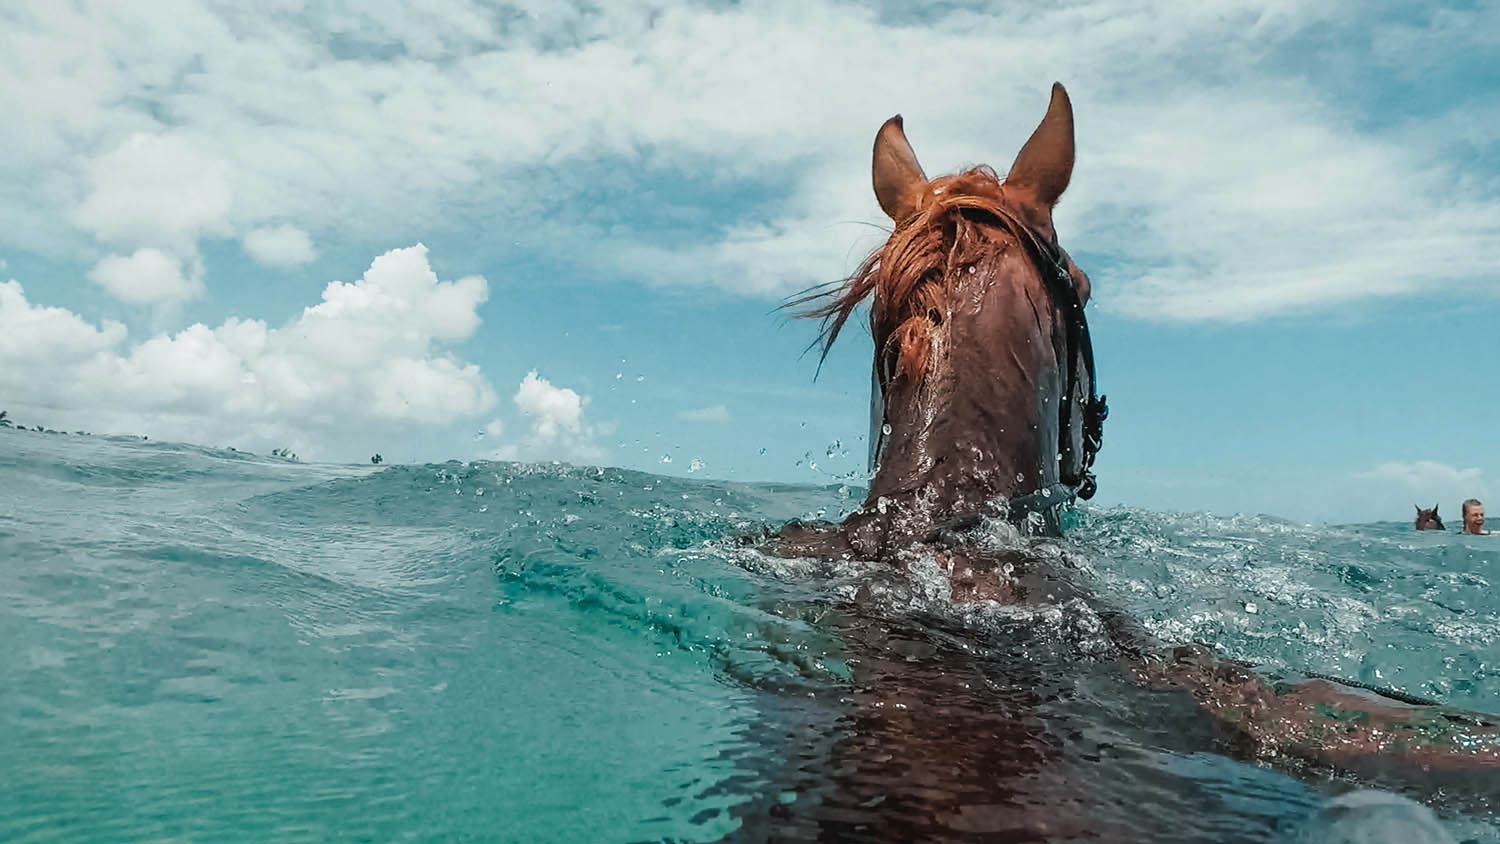 Horse swimming in Caribbean Water - GoPro Hero 6 Photo